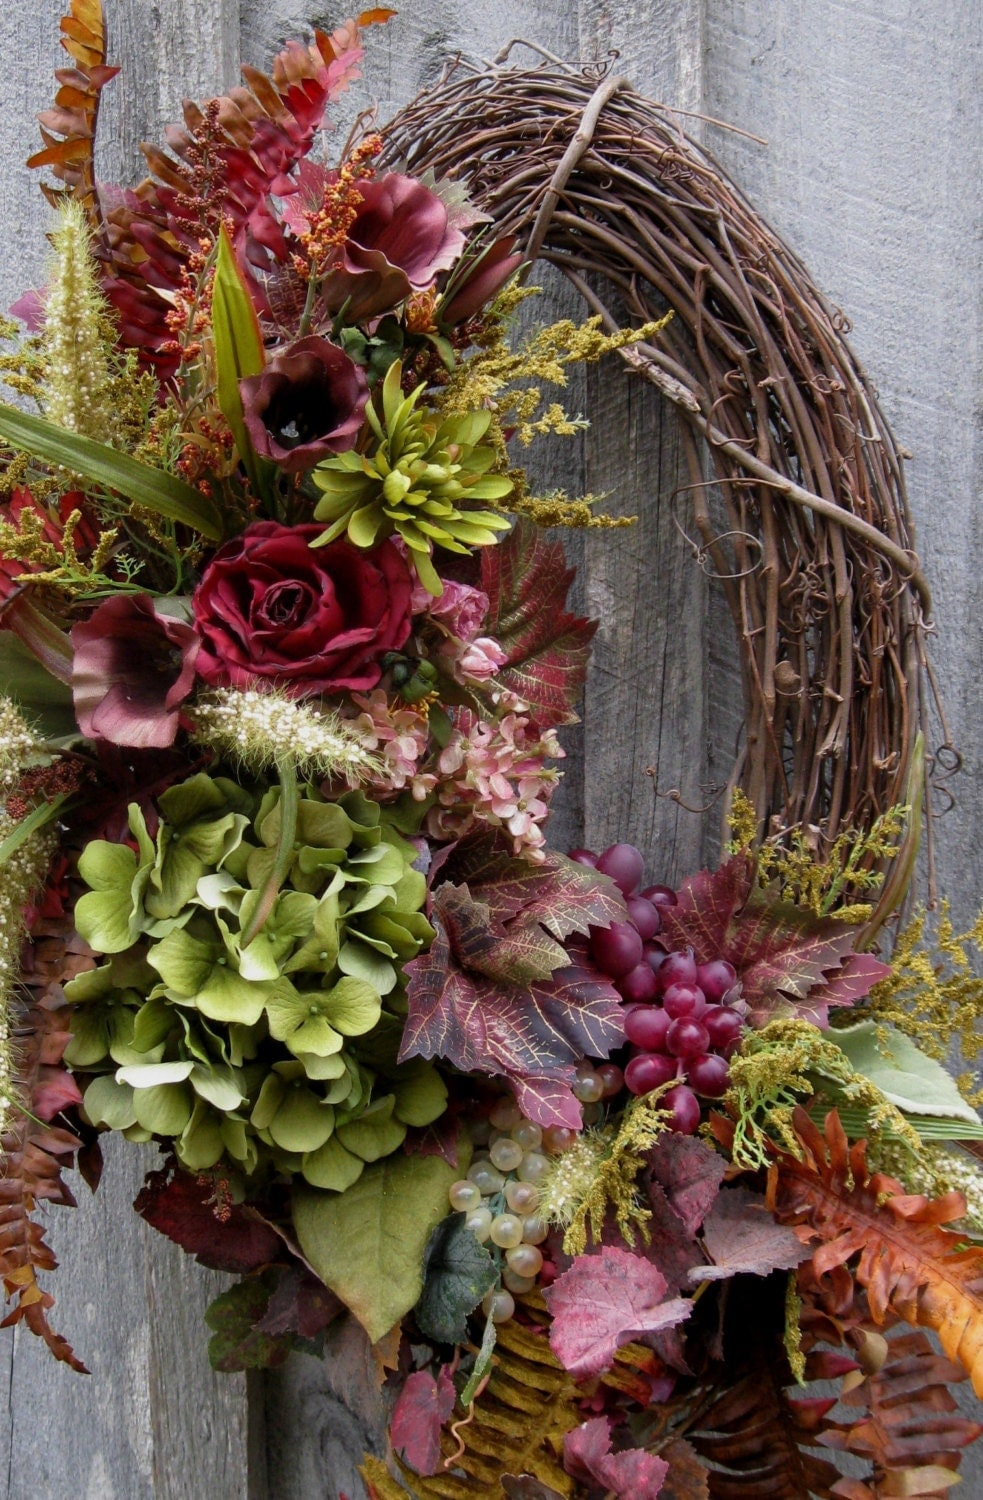 Fall Wreath Tuscany Autumn Decor Elegant Floral Wreath